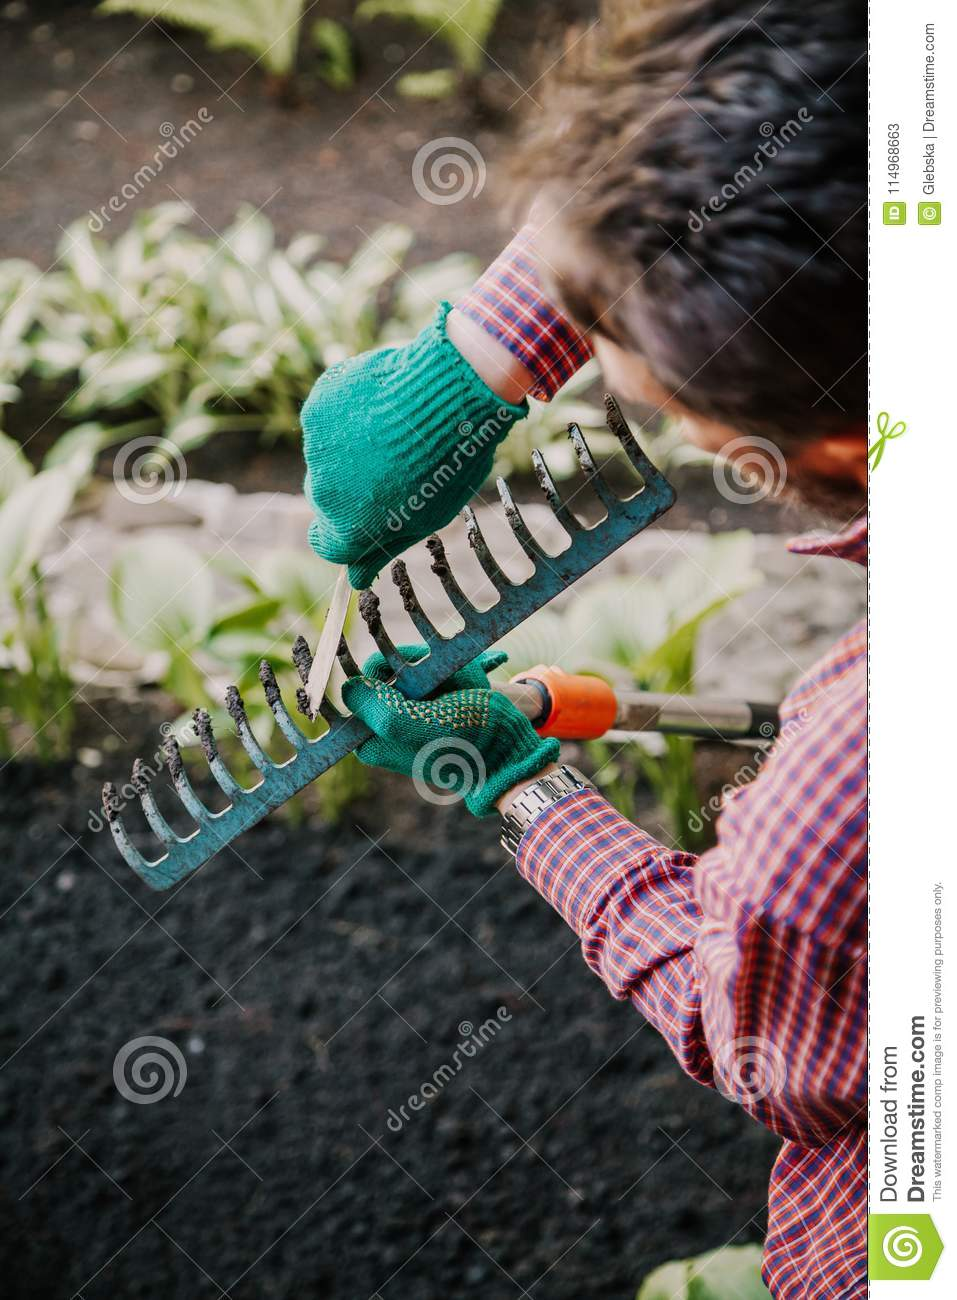 Download Hands Clear Rake From Ground By Weight With Special Scraper Stock  Image   Image Of